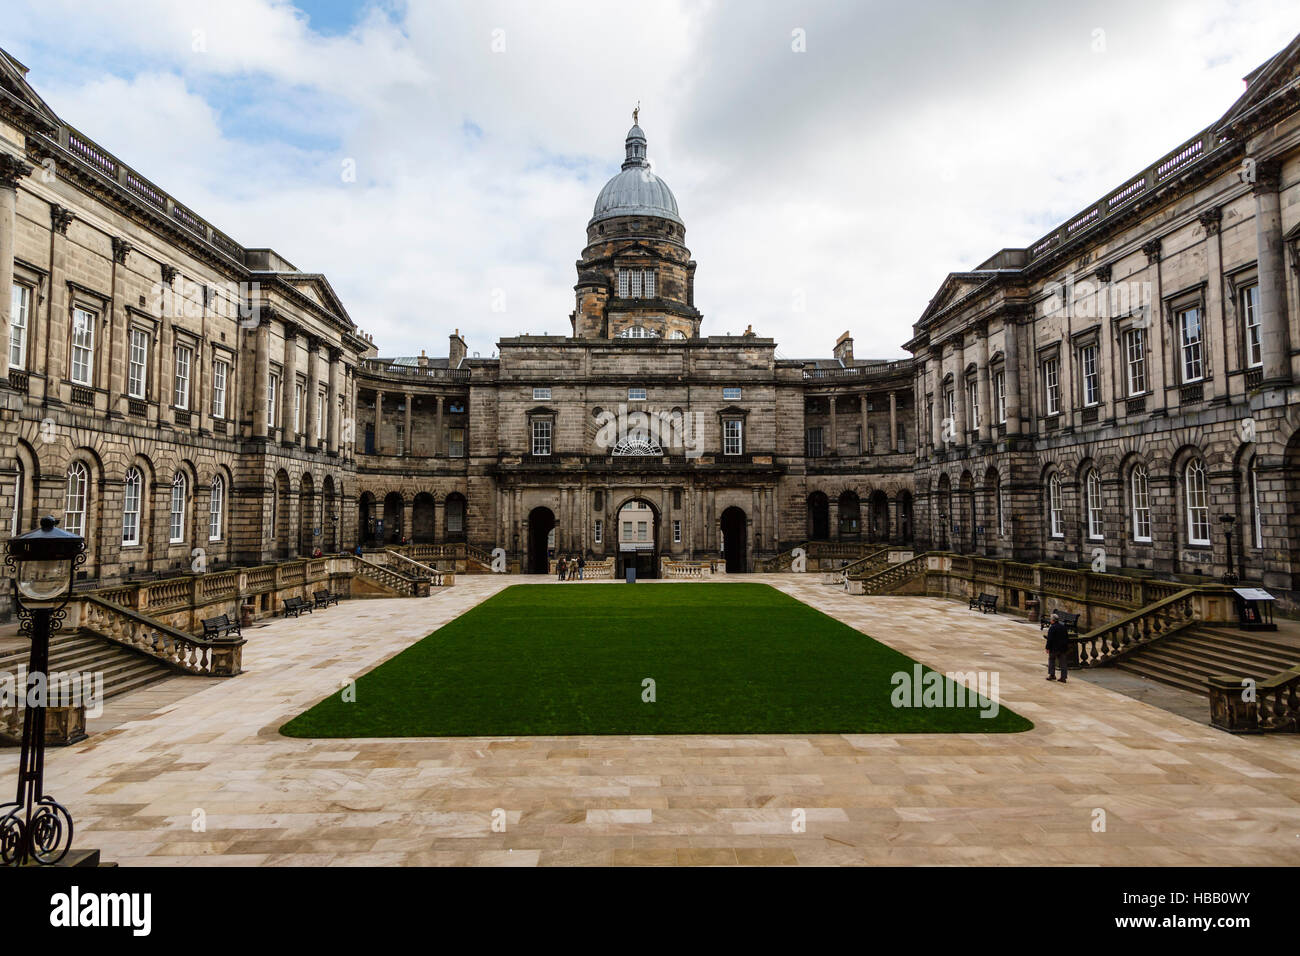 Old College at the University of Edinburgh, Scotland - Stock Image